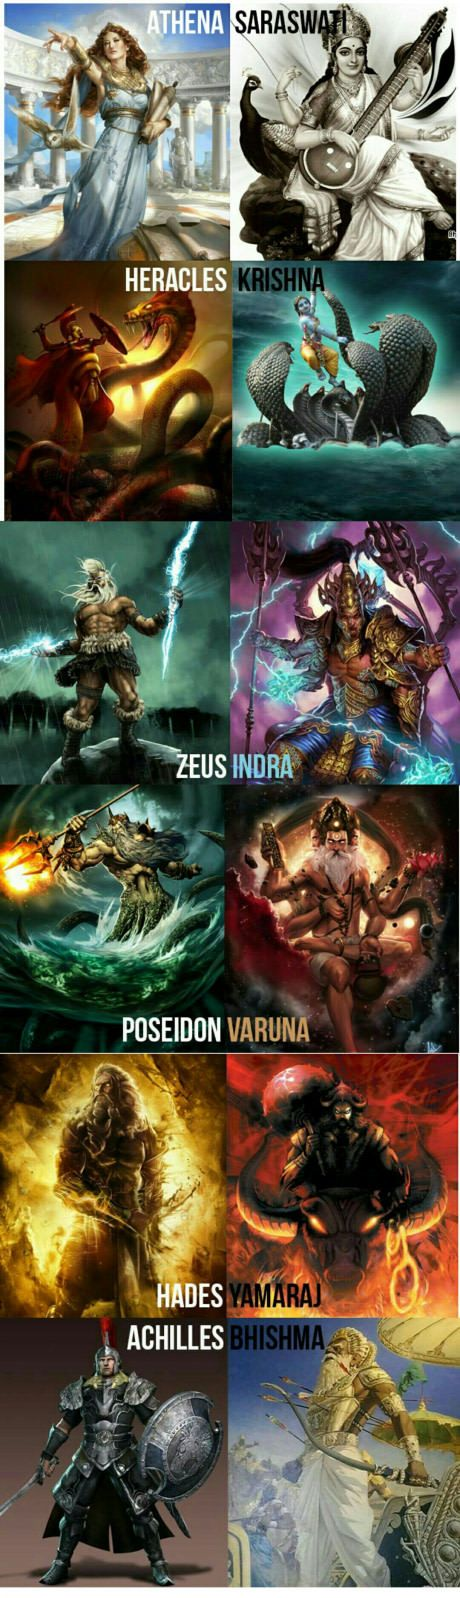 Hindu Gods and there Greek Counterparts - interesting but I thought Hindu gods were facets of the same deity. Plus that's not a pic of Hades, that's Zeus.